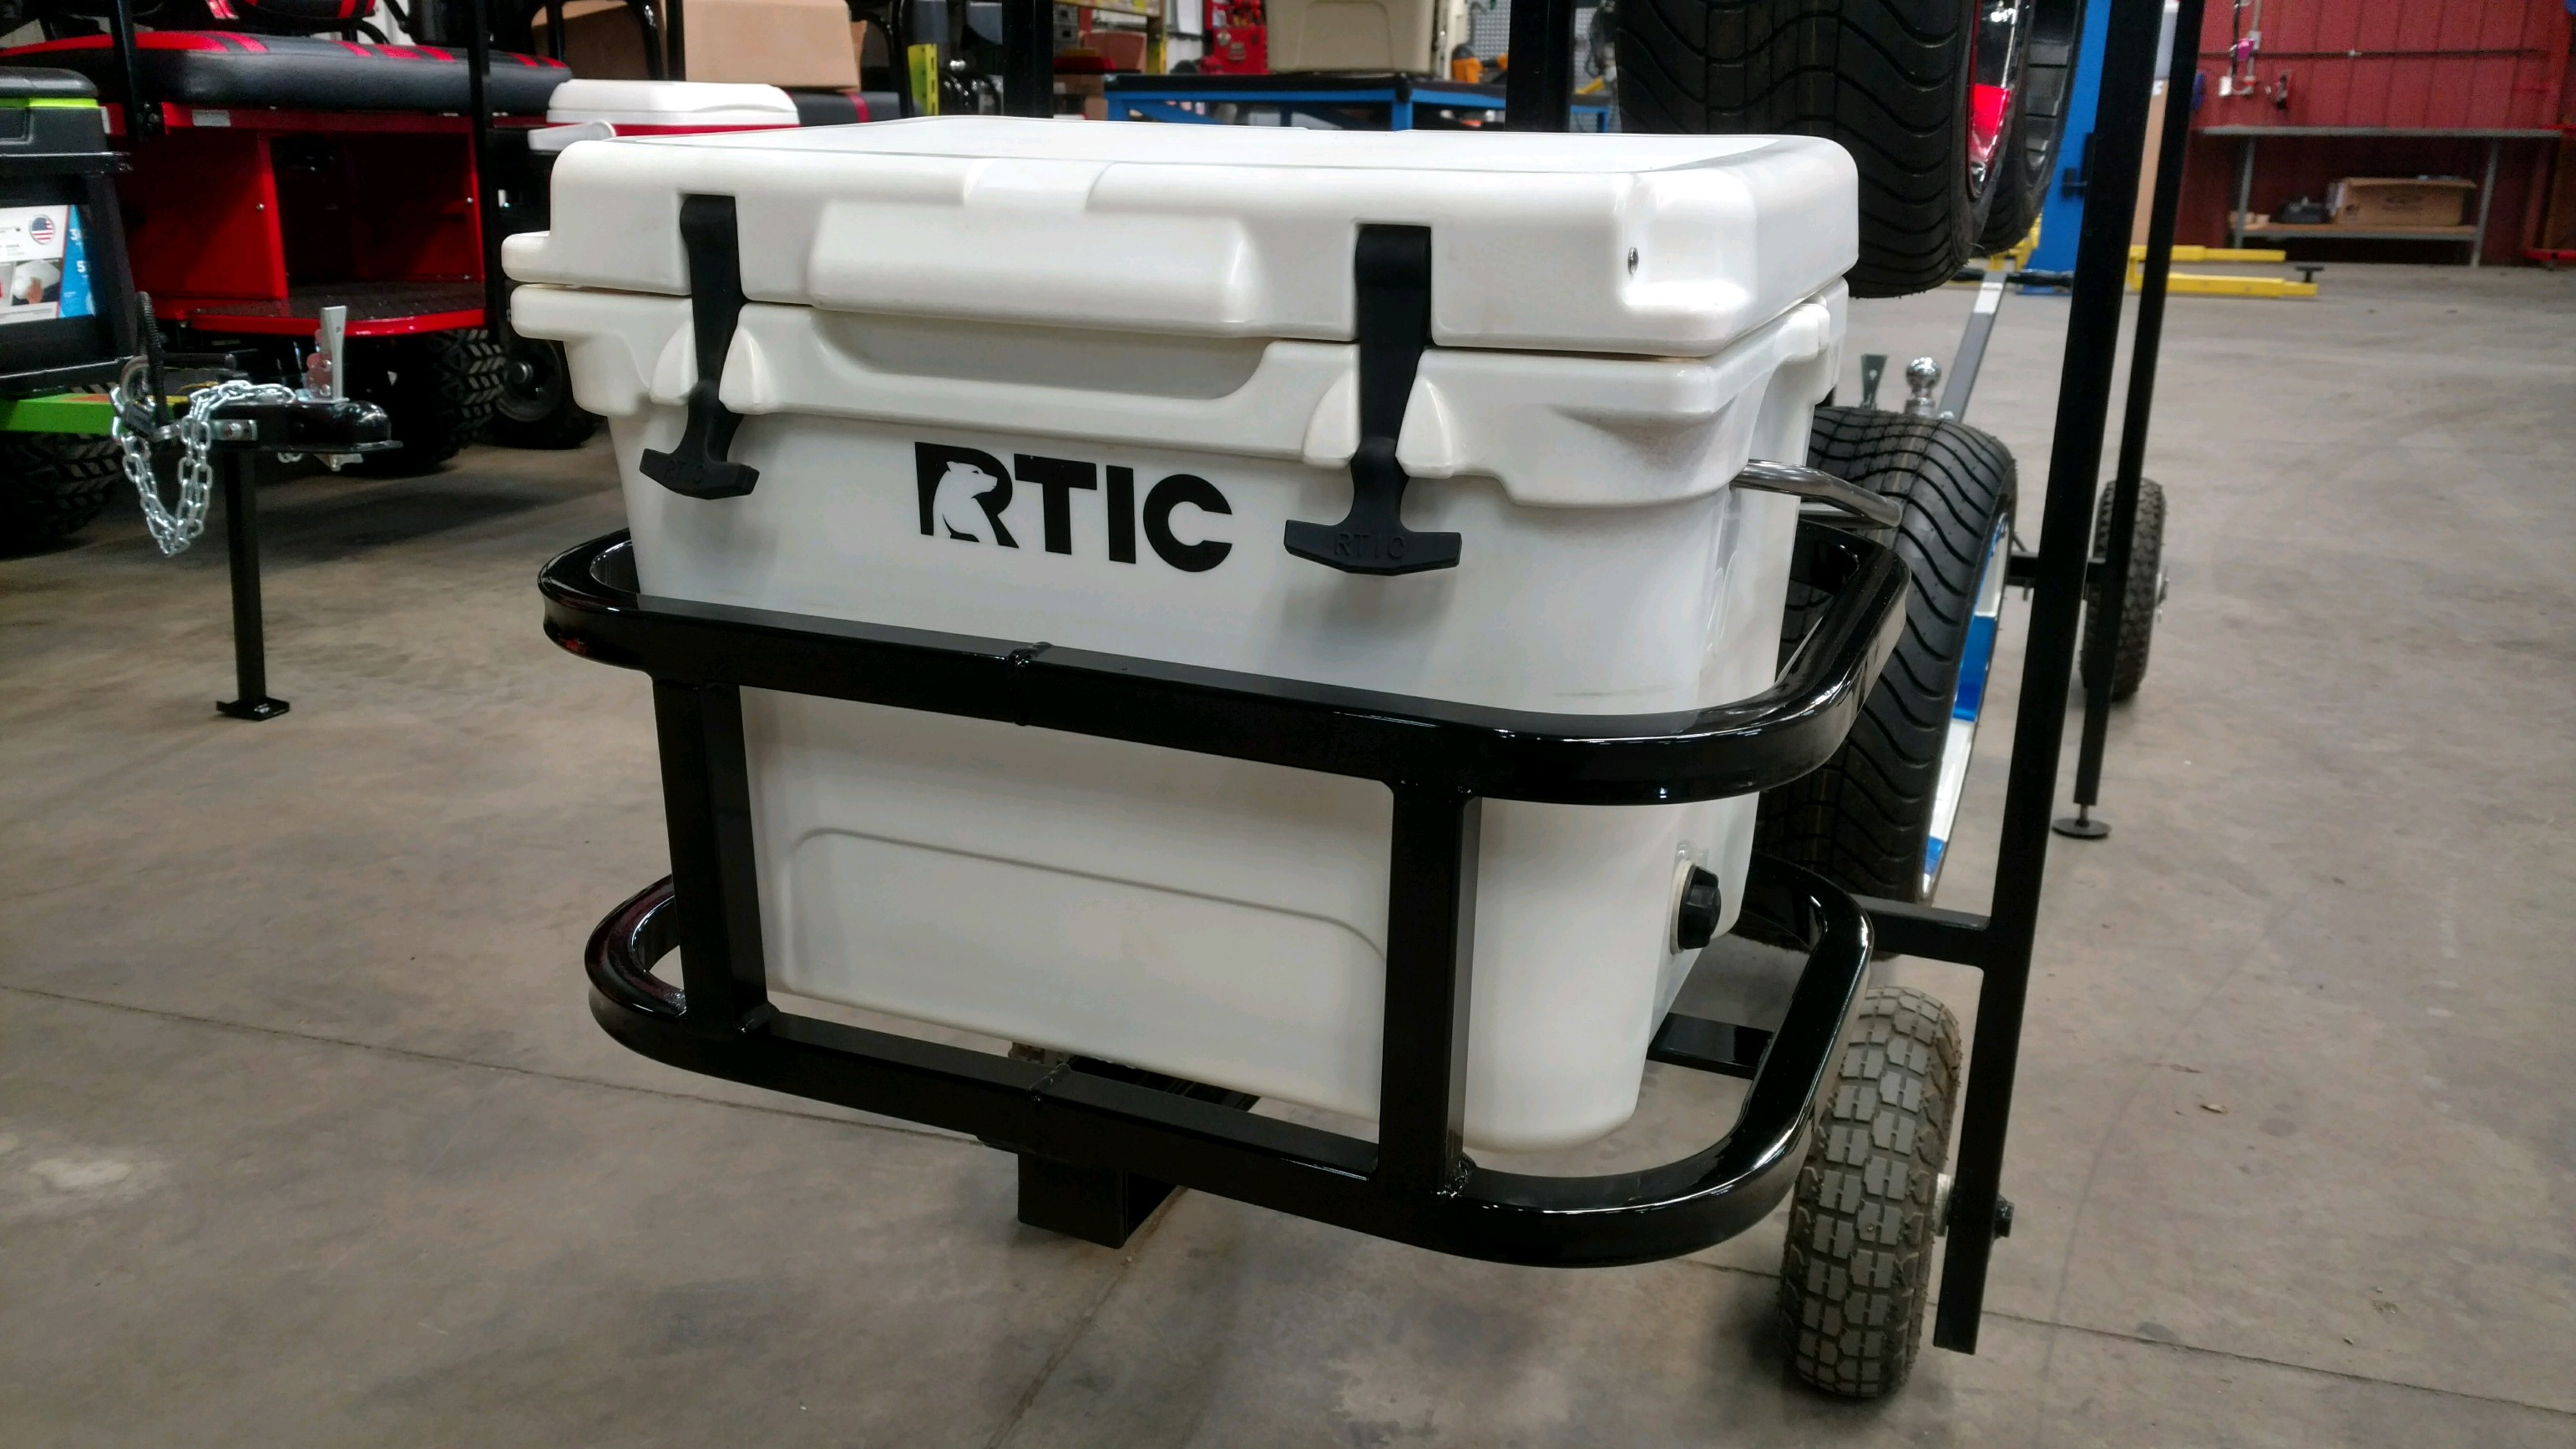 RTIC 20/Grizzly 20/Ozark 26 Hitch Cooler Carrier